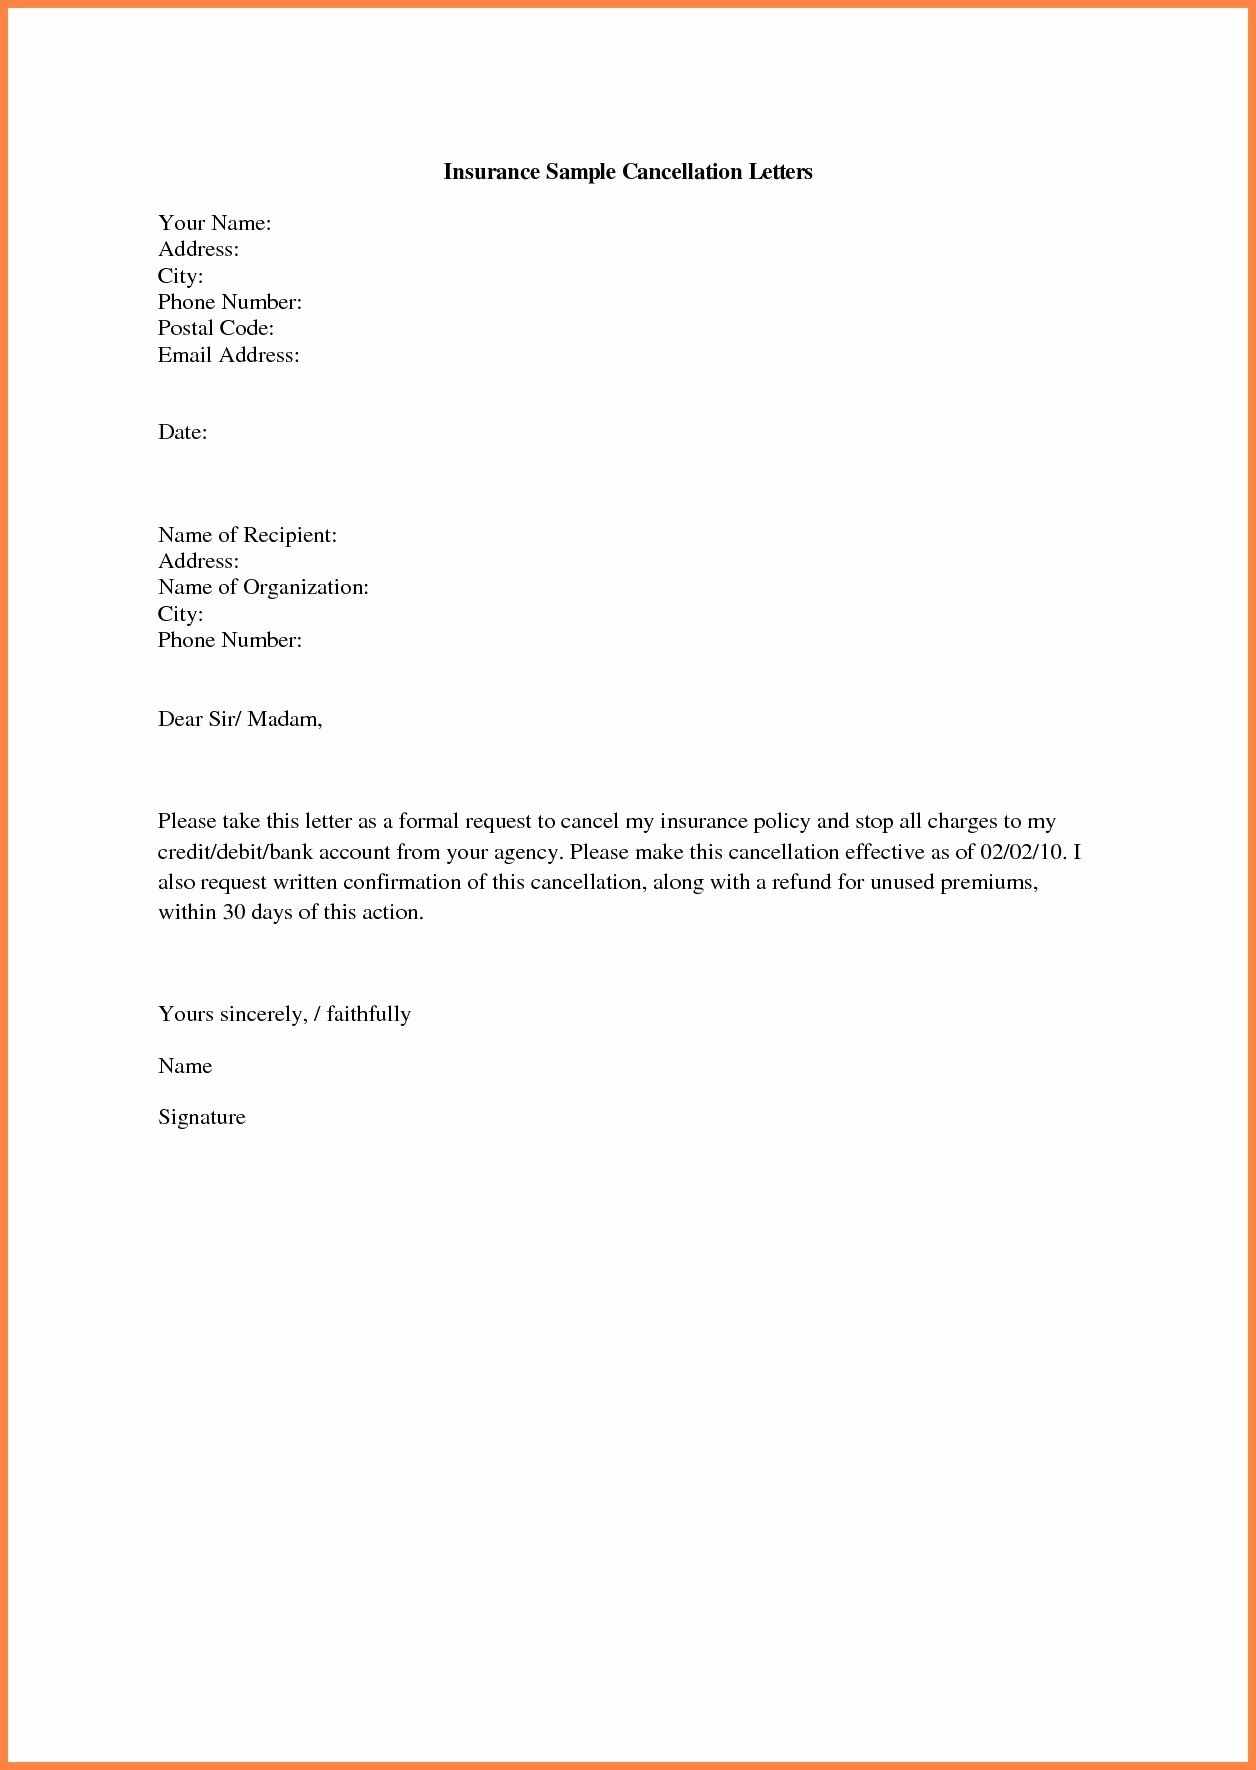 Refund Letter Templates Fresh Insurance Cancellation Letter format